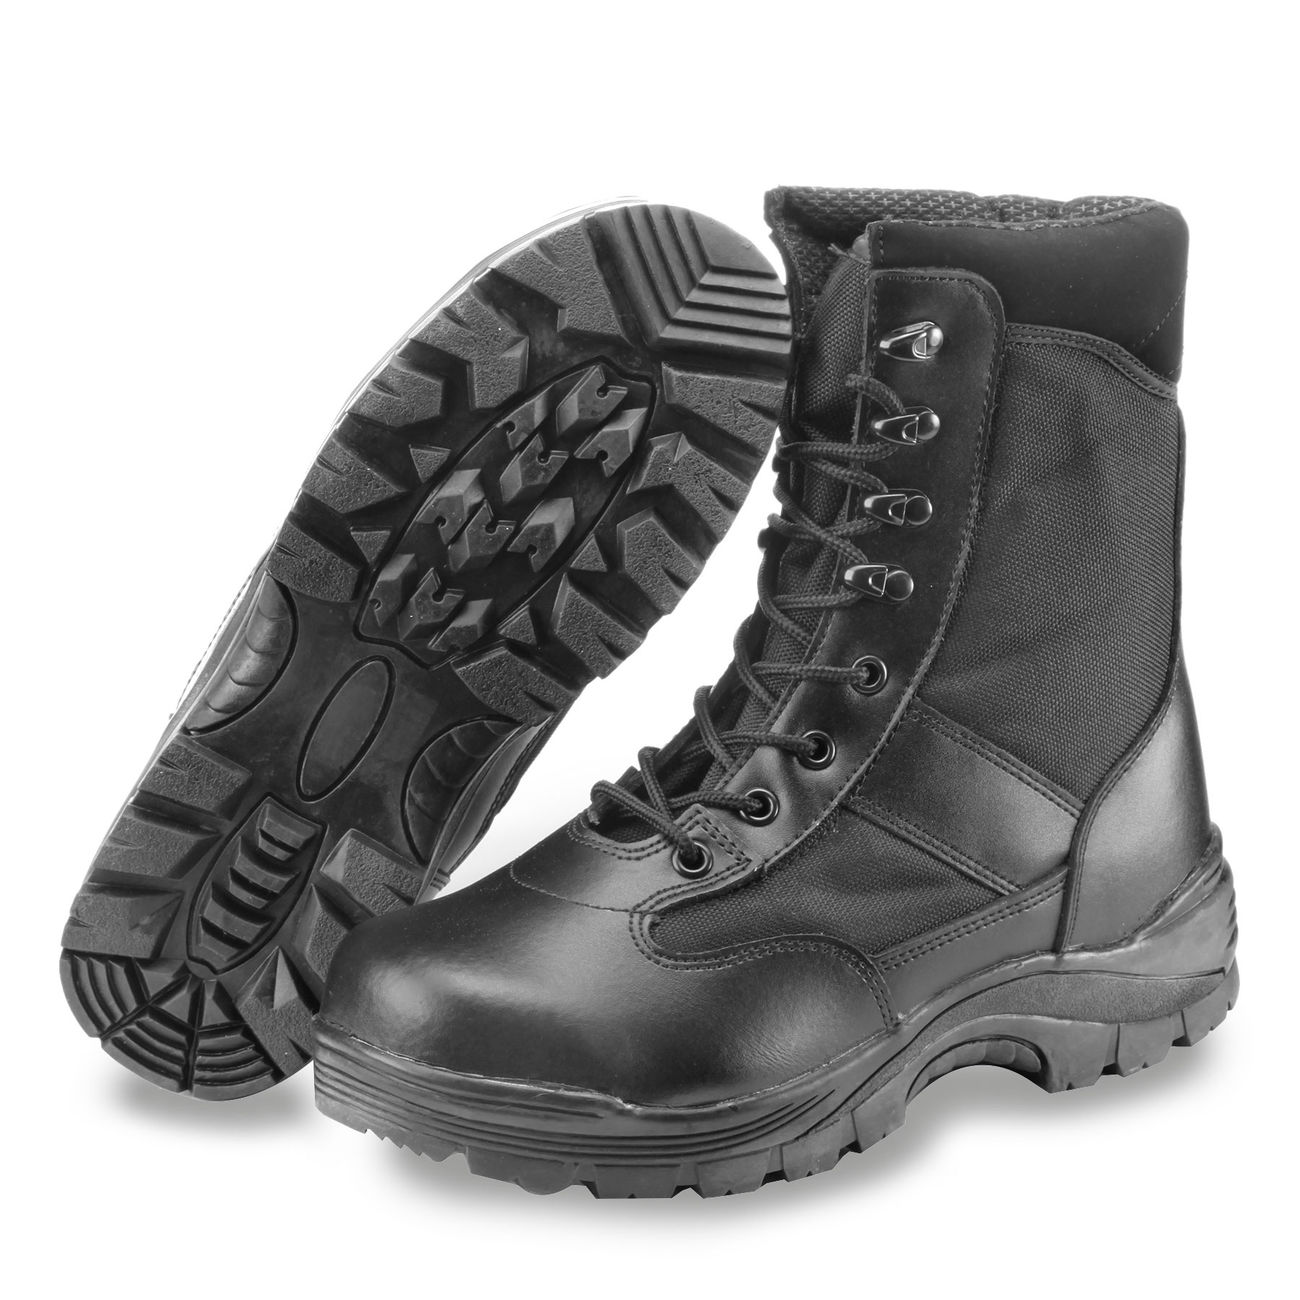 Security Stiefel Boots 8-Loch Mil-Tec 1